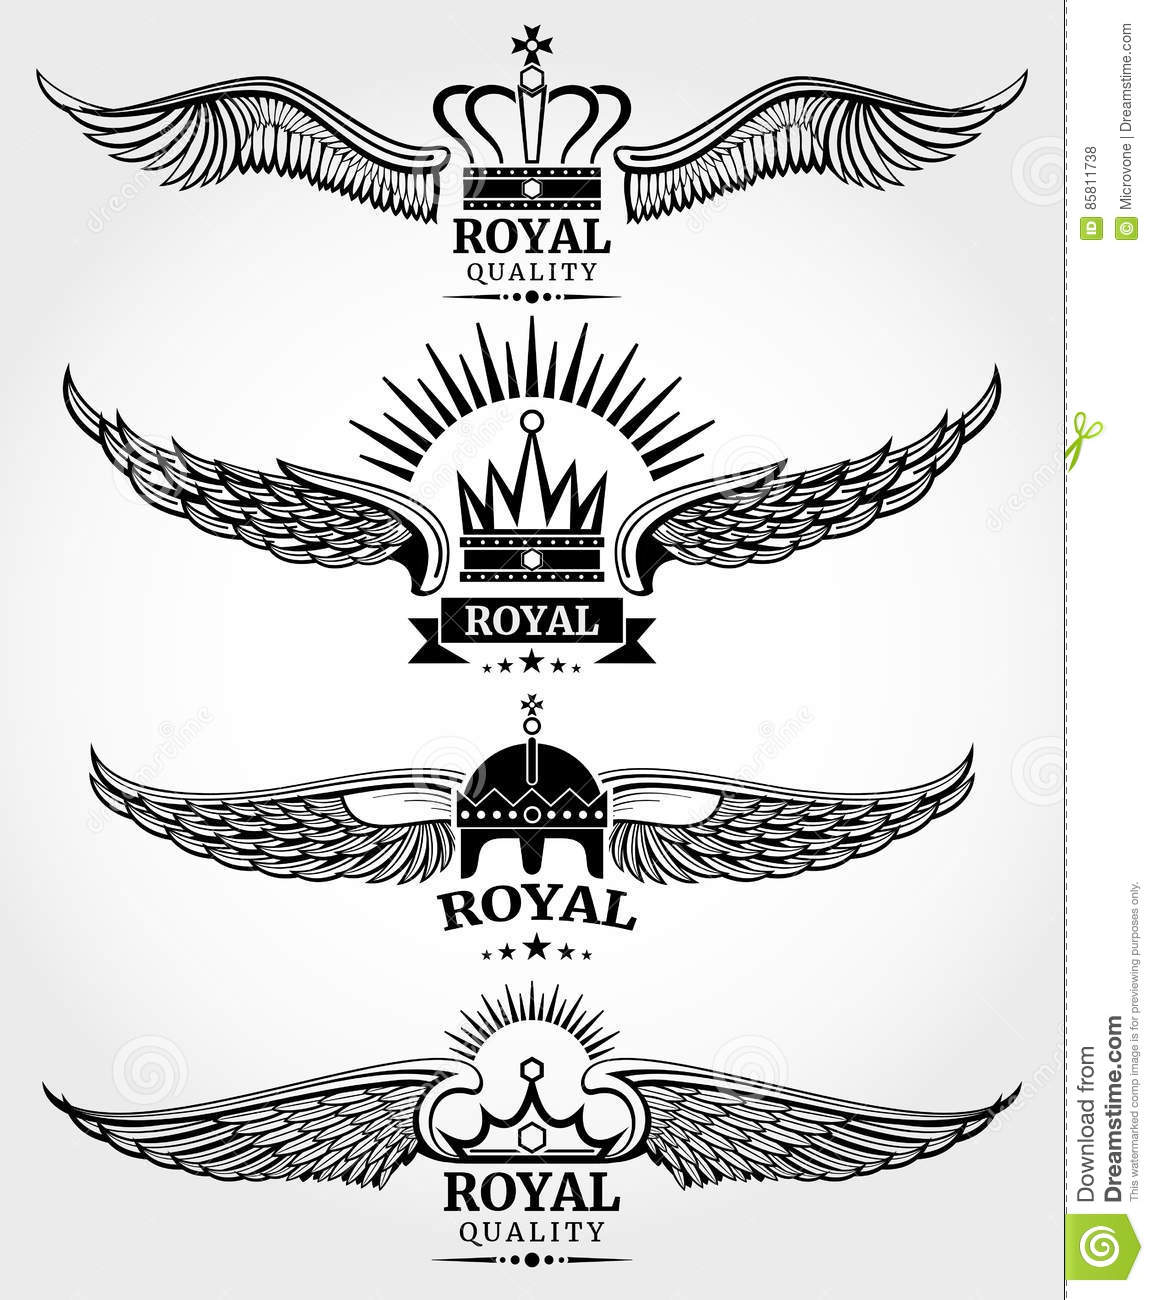 vector winged crowns royal logo templates set in black and white vector illustration. Black Bedroom Furniture Sets. Home Design Ideas